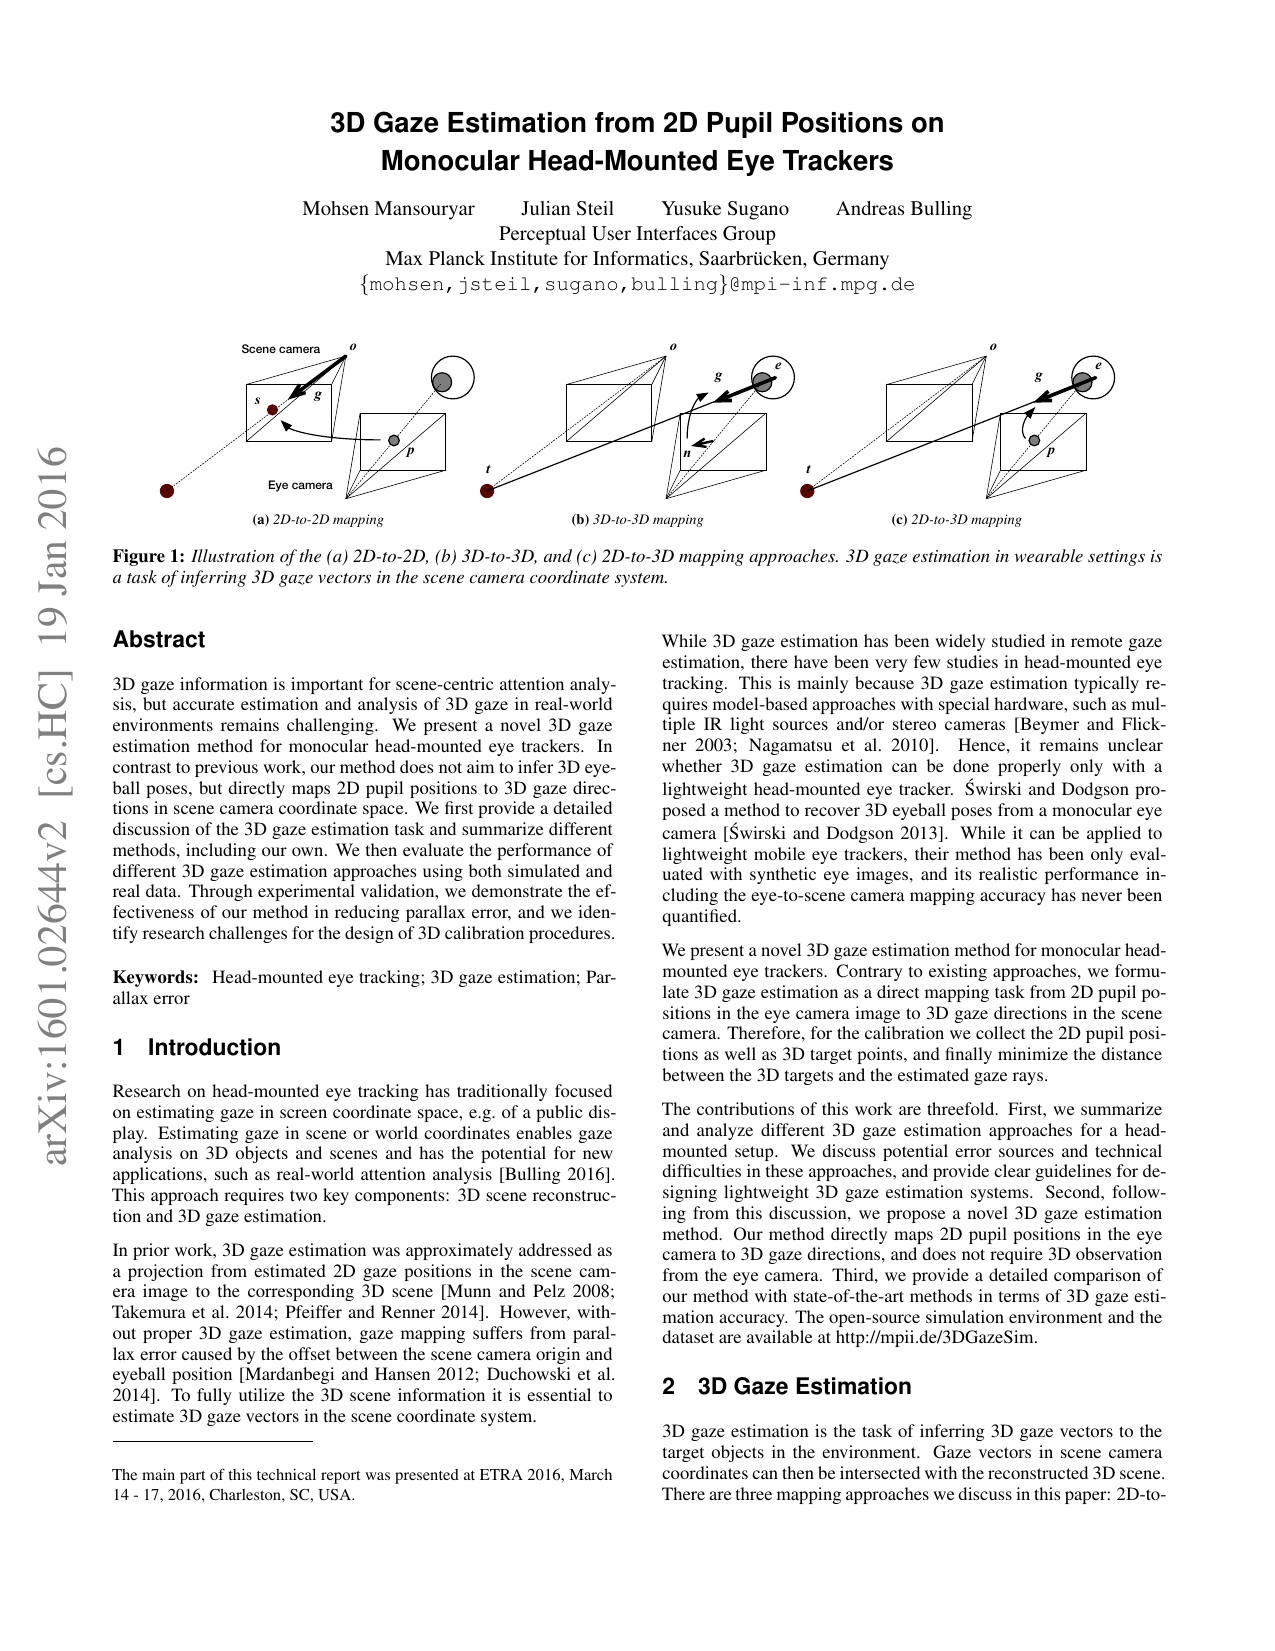 3D Gaze Estimation from 2D Pupil Positions on Monocular Head-Mounted Eye Trackers